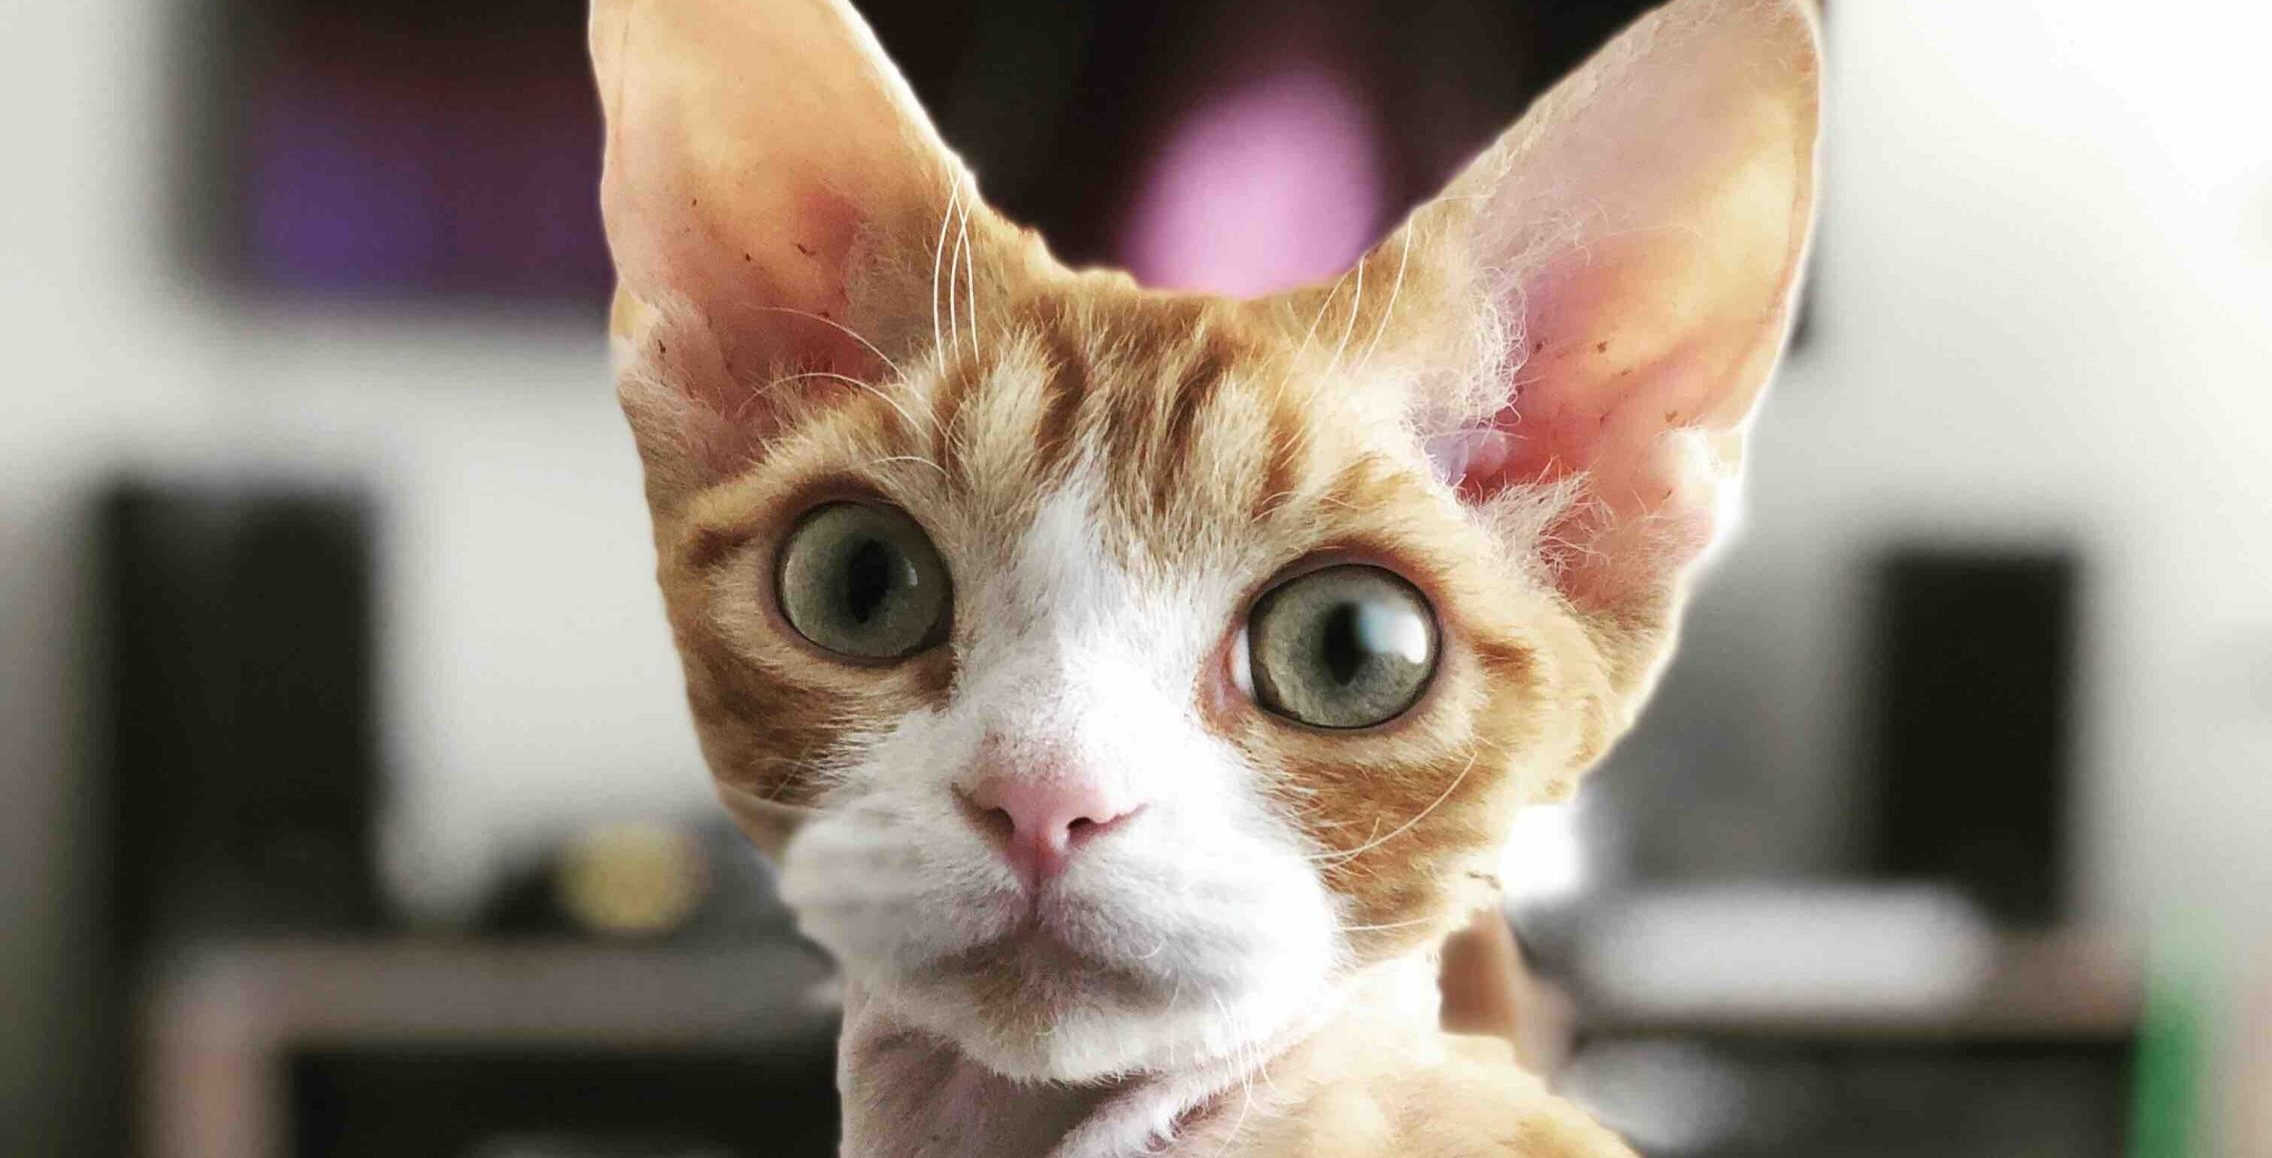 cat with large ears and eyes